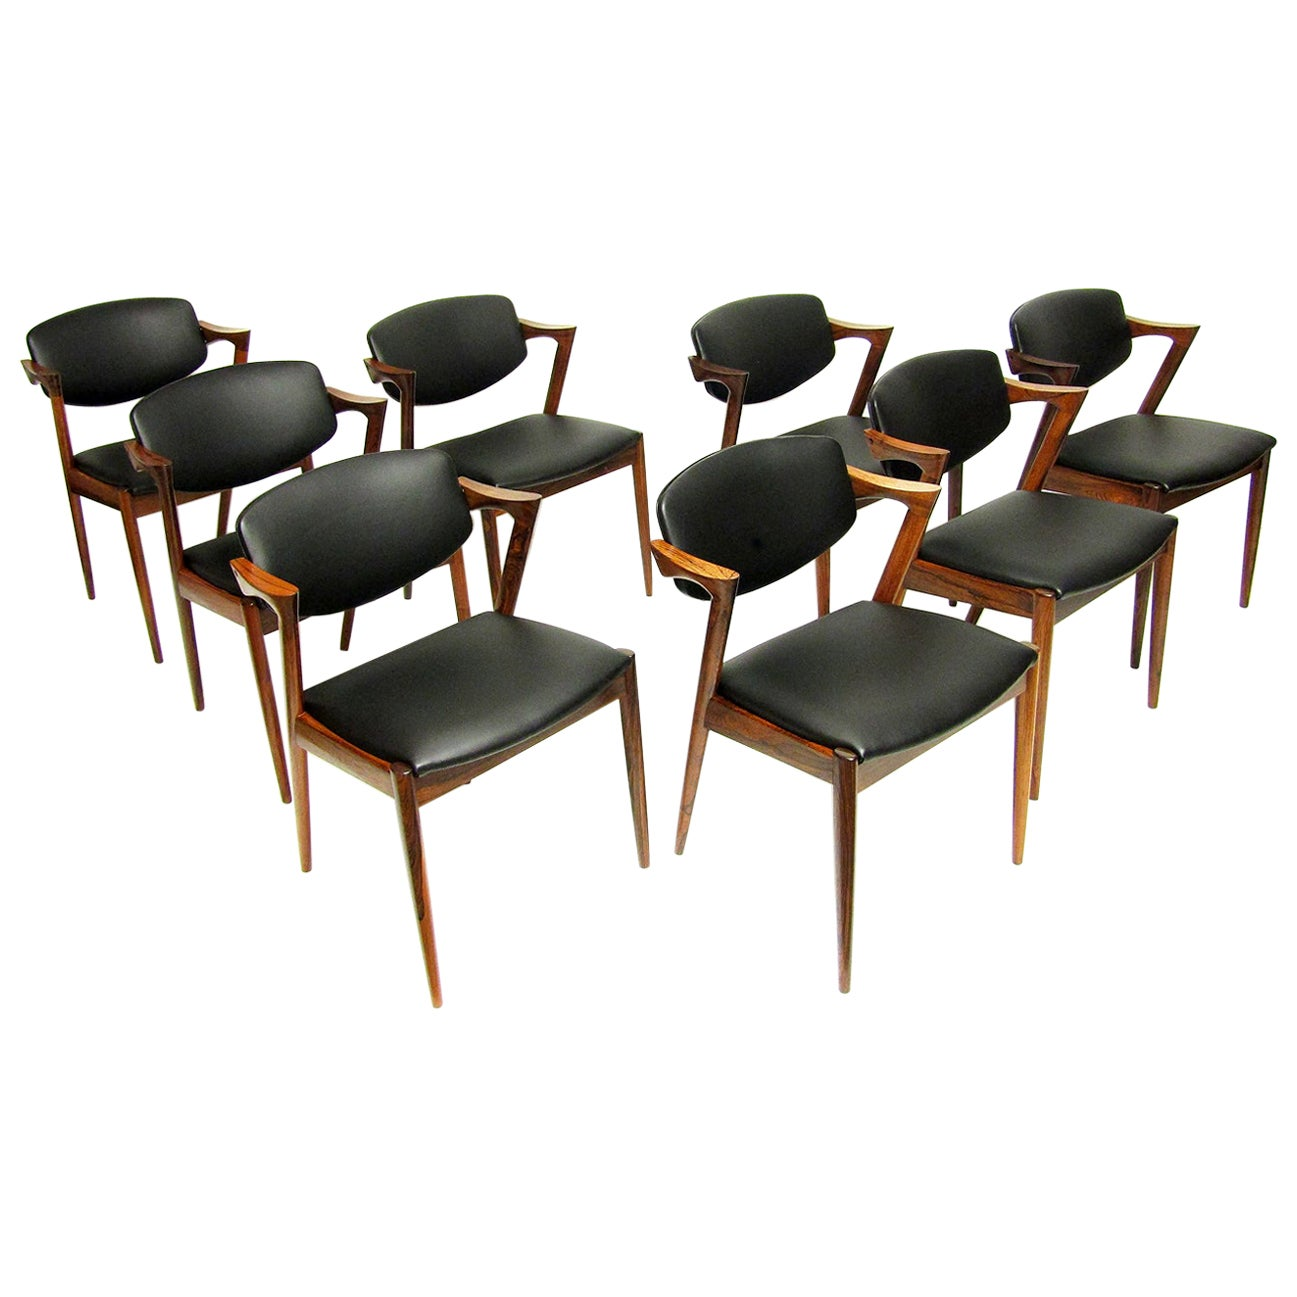 8 Danish Model 42 Dining / Conference Chairs in Rio Rosewood by Kai Kristiansen